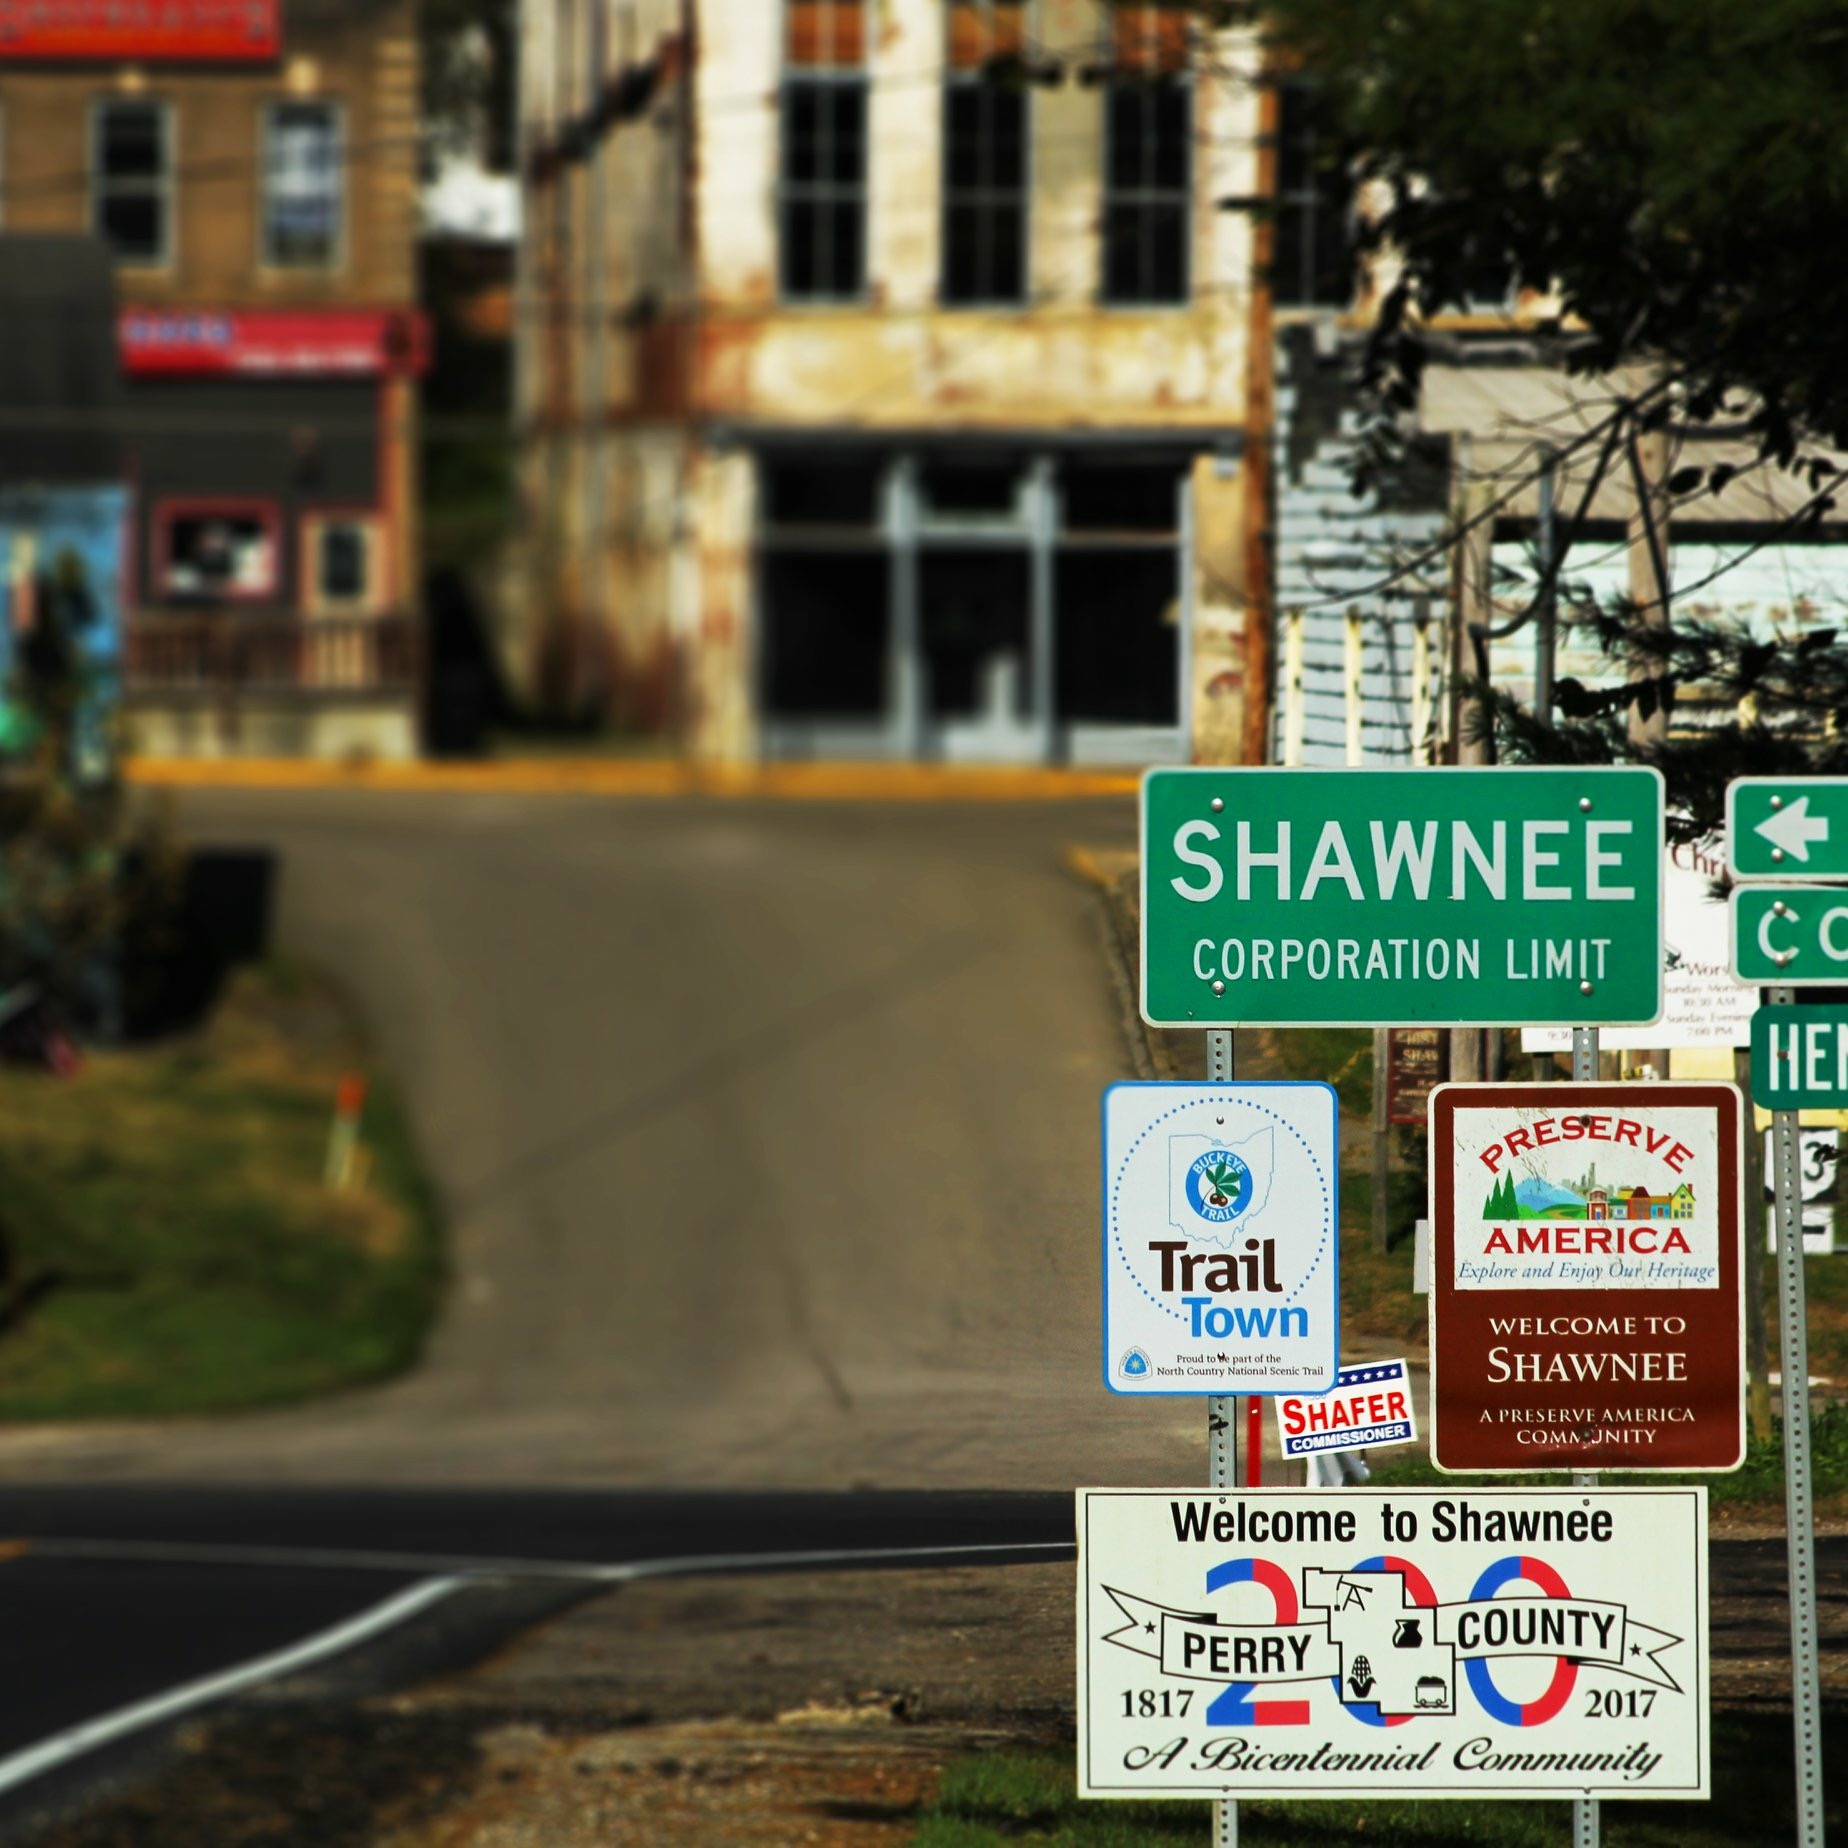 Meet Ups in Shawnee for Experience Entrepreneurs, Producers, and Interpretive Guides